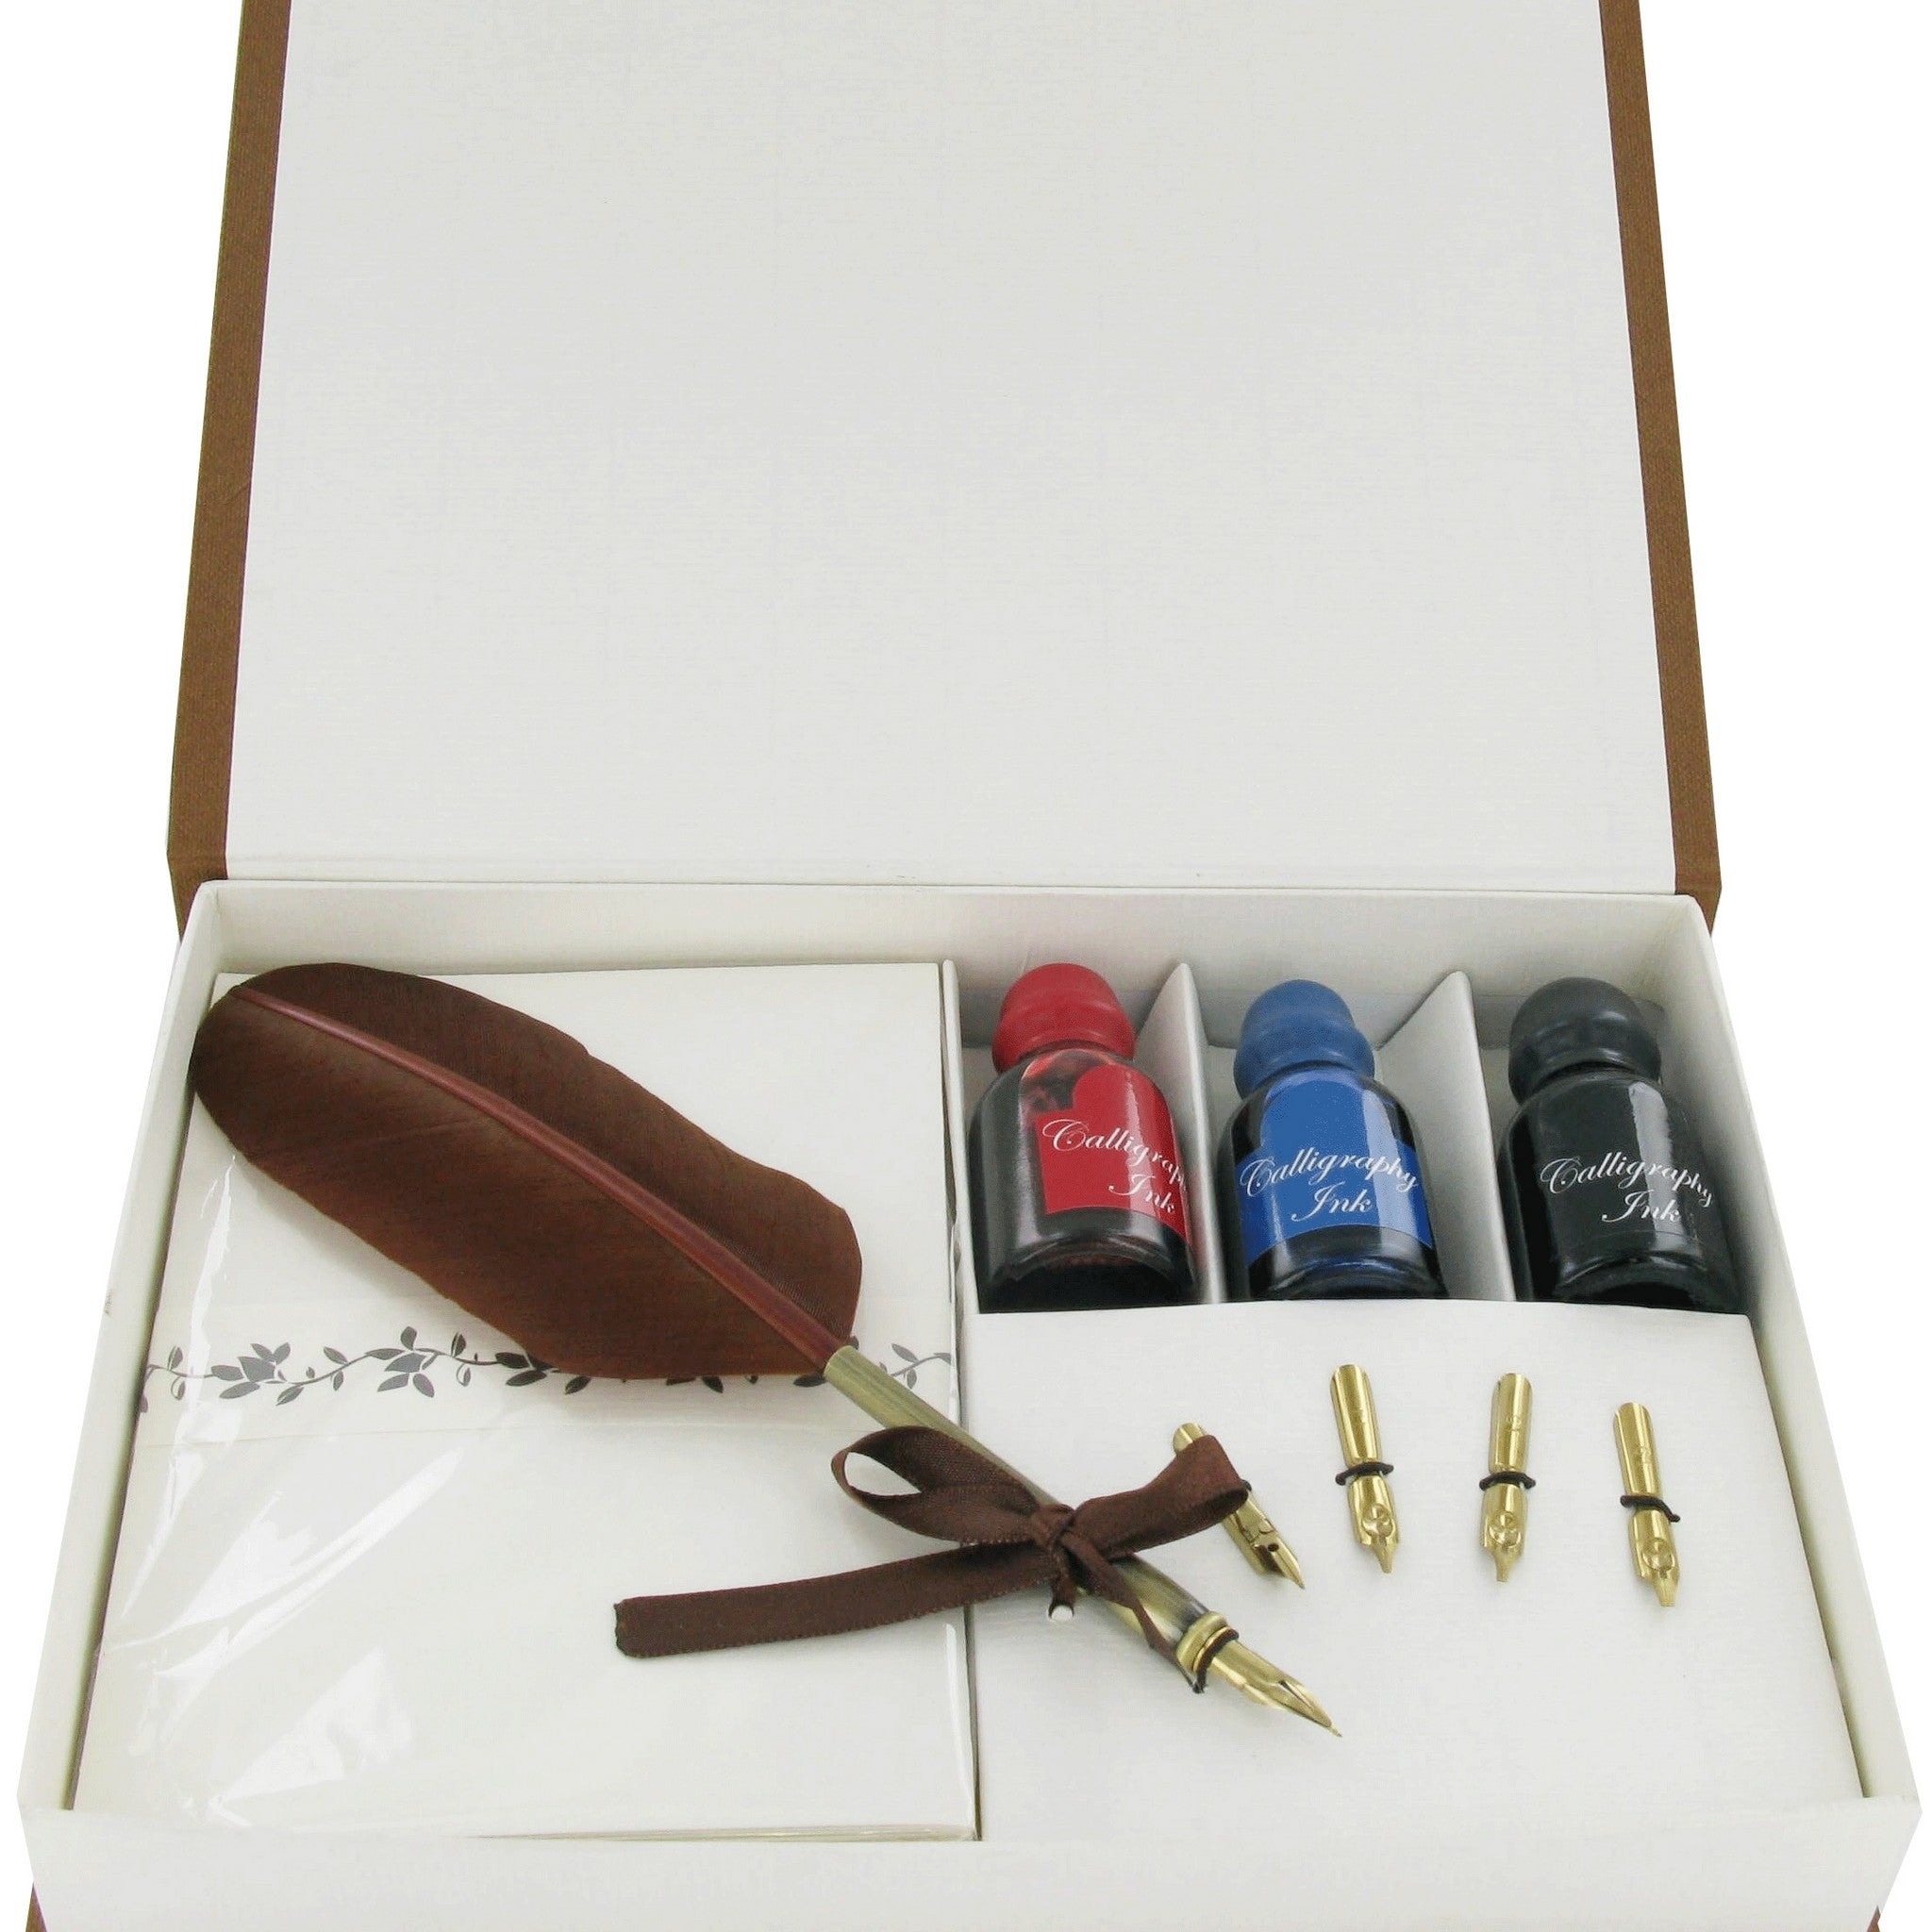 Calligraphy Quill Pen Set, 4 Nibs, 3, Inks & Stationary